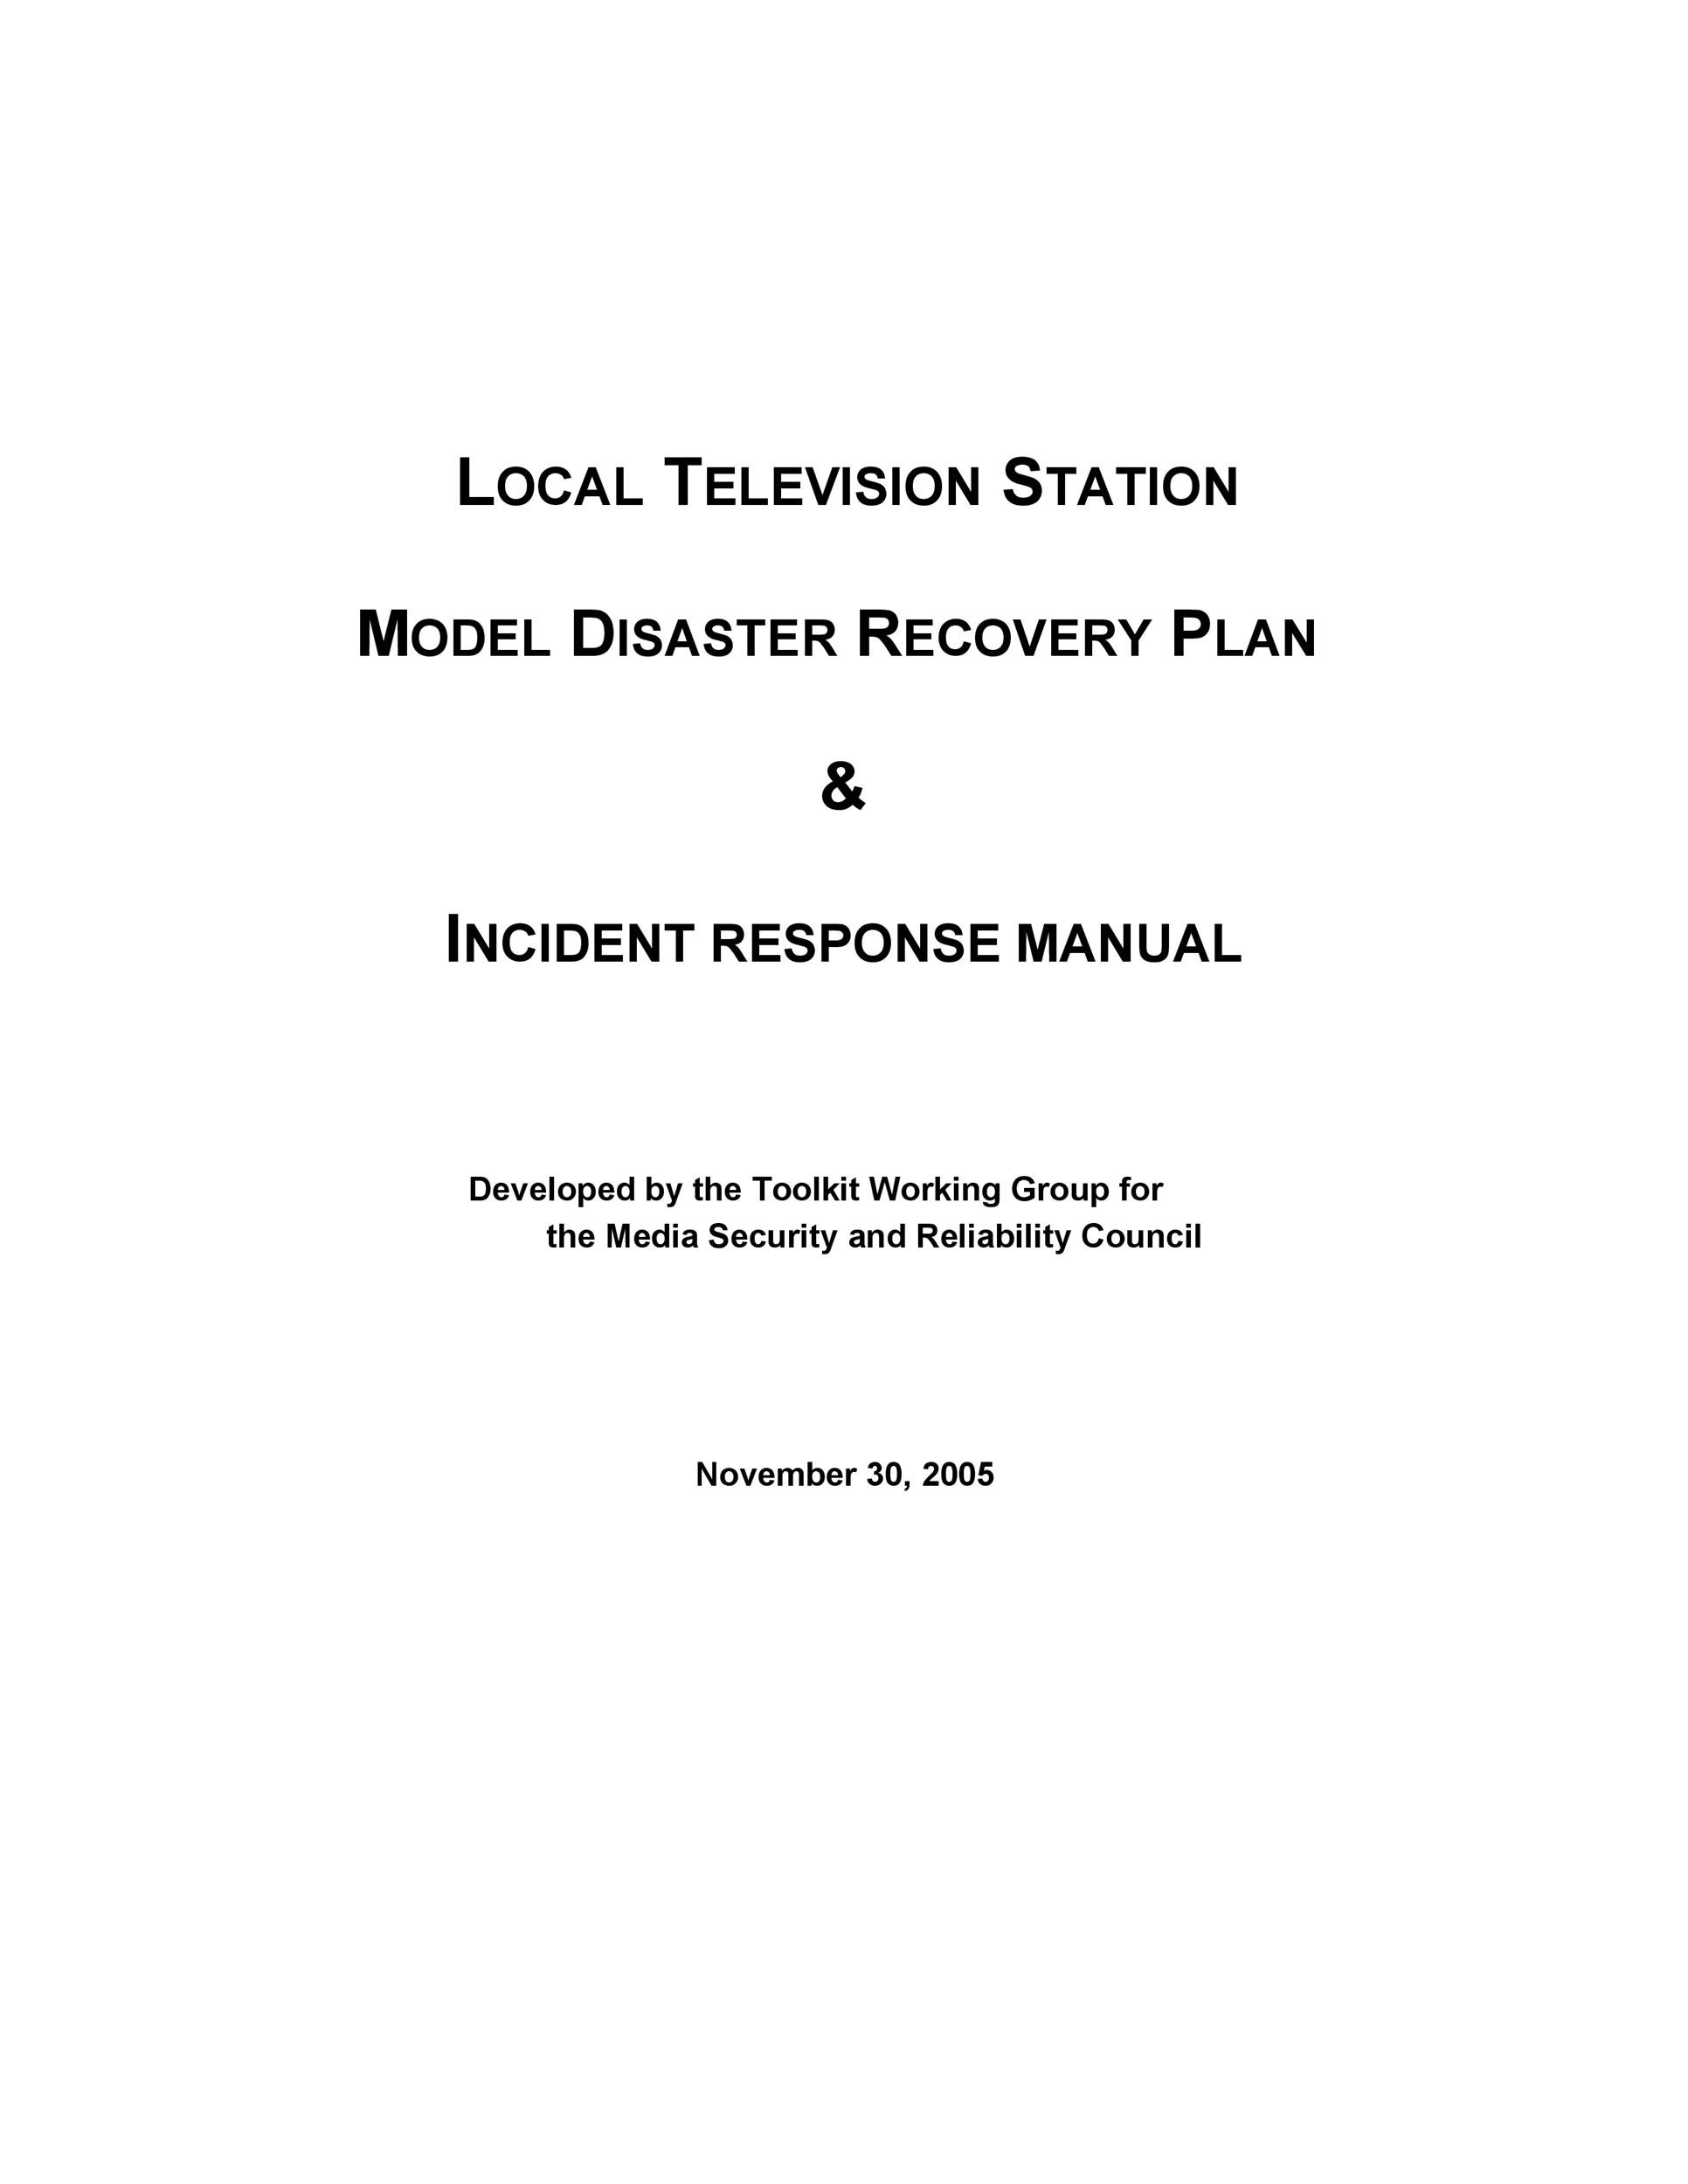 Free Disaster Recovery Plan Template 49